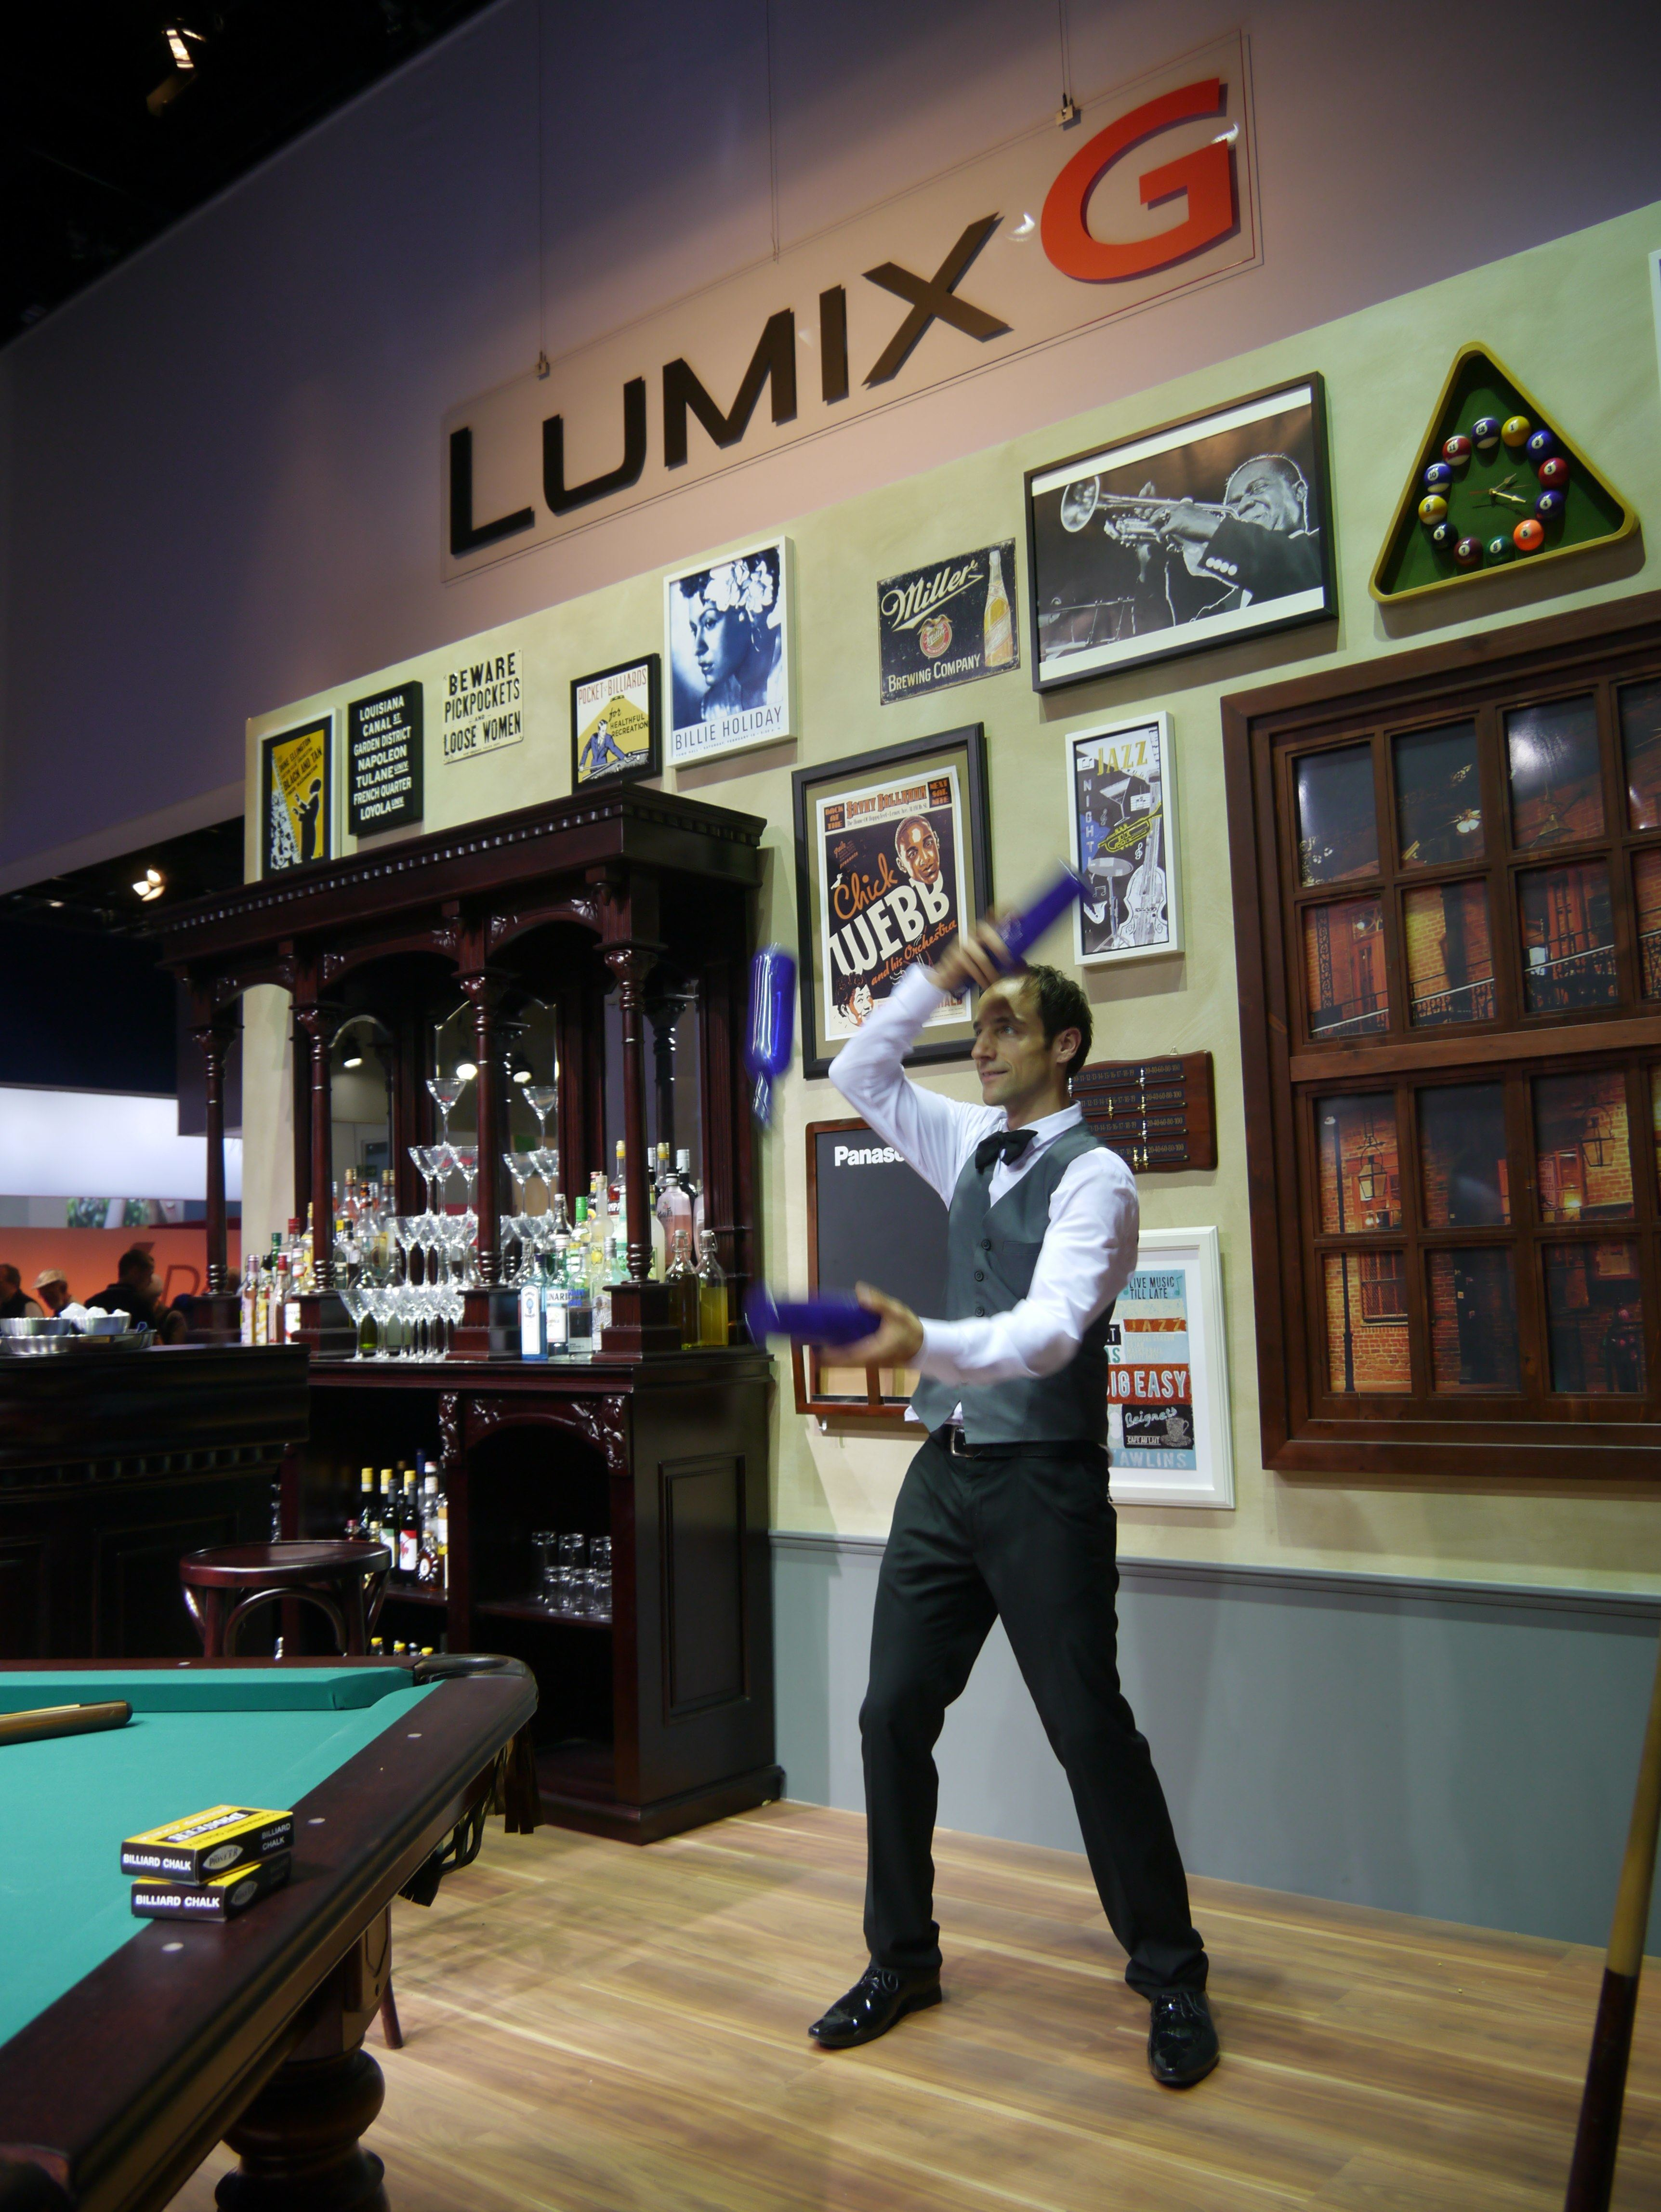 Lots to see & photograph on the Panasonic stand, even a juggling bartender!